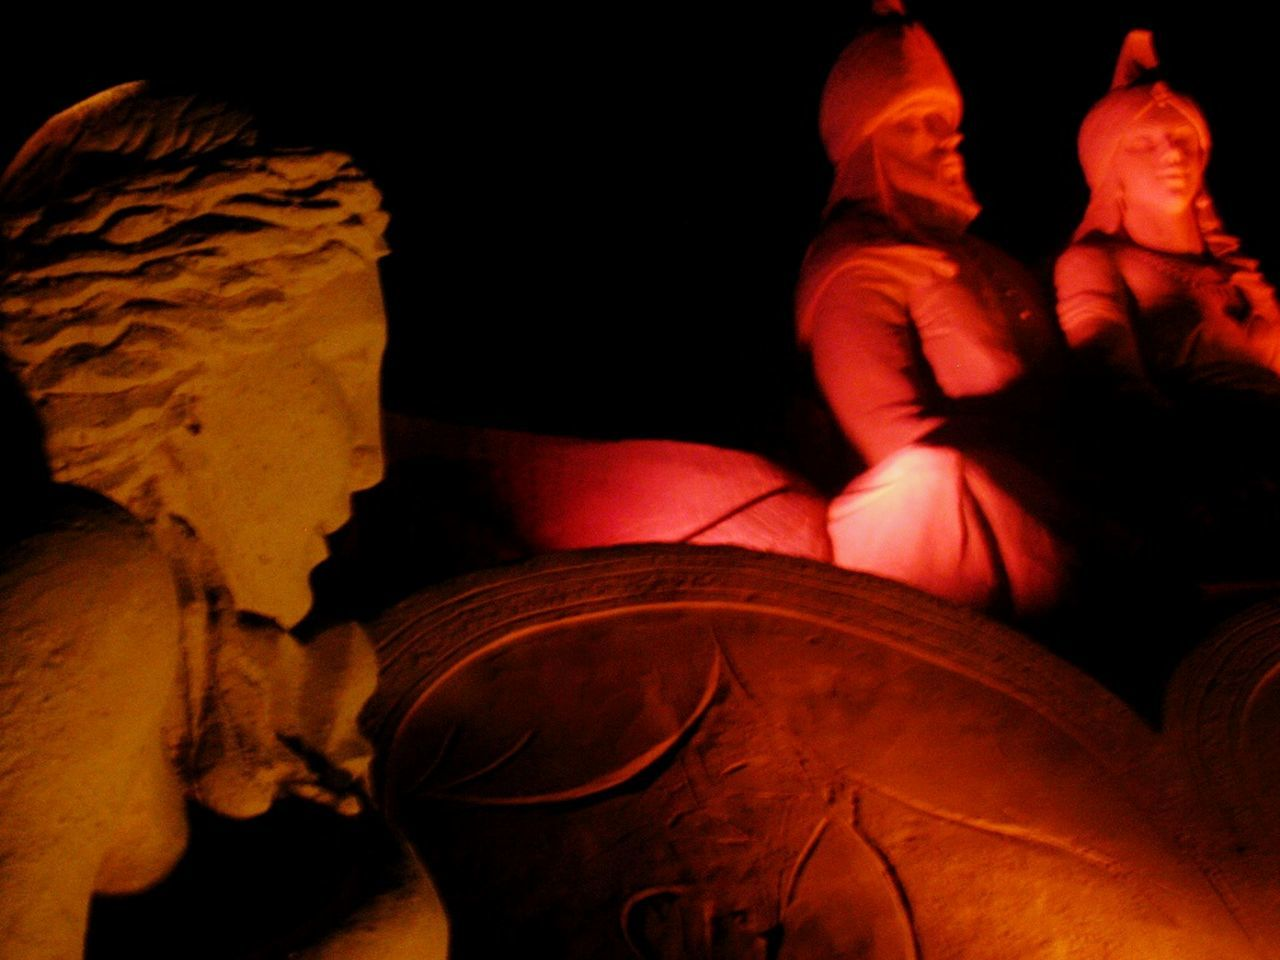 Sculptures made of sand. Creative Light And Shadow All The Neon Lights EyeEm Best Shots Eye4photography  Taking Photos Kumdan Masallar Sandy Tales Istanbul Turkey Darkness And Light Art EyeEmBestPics My Best Photo 2015